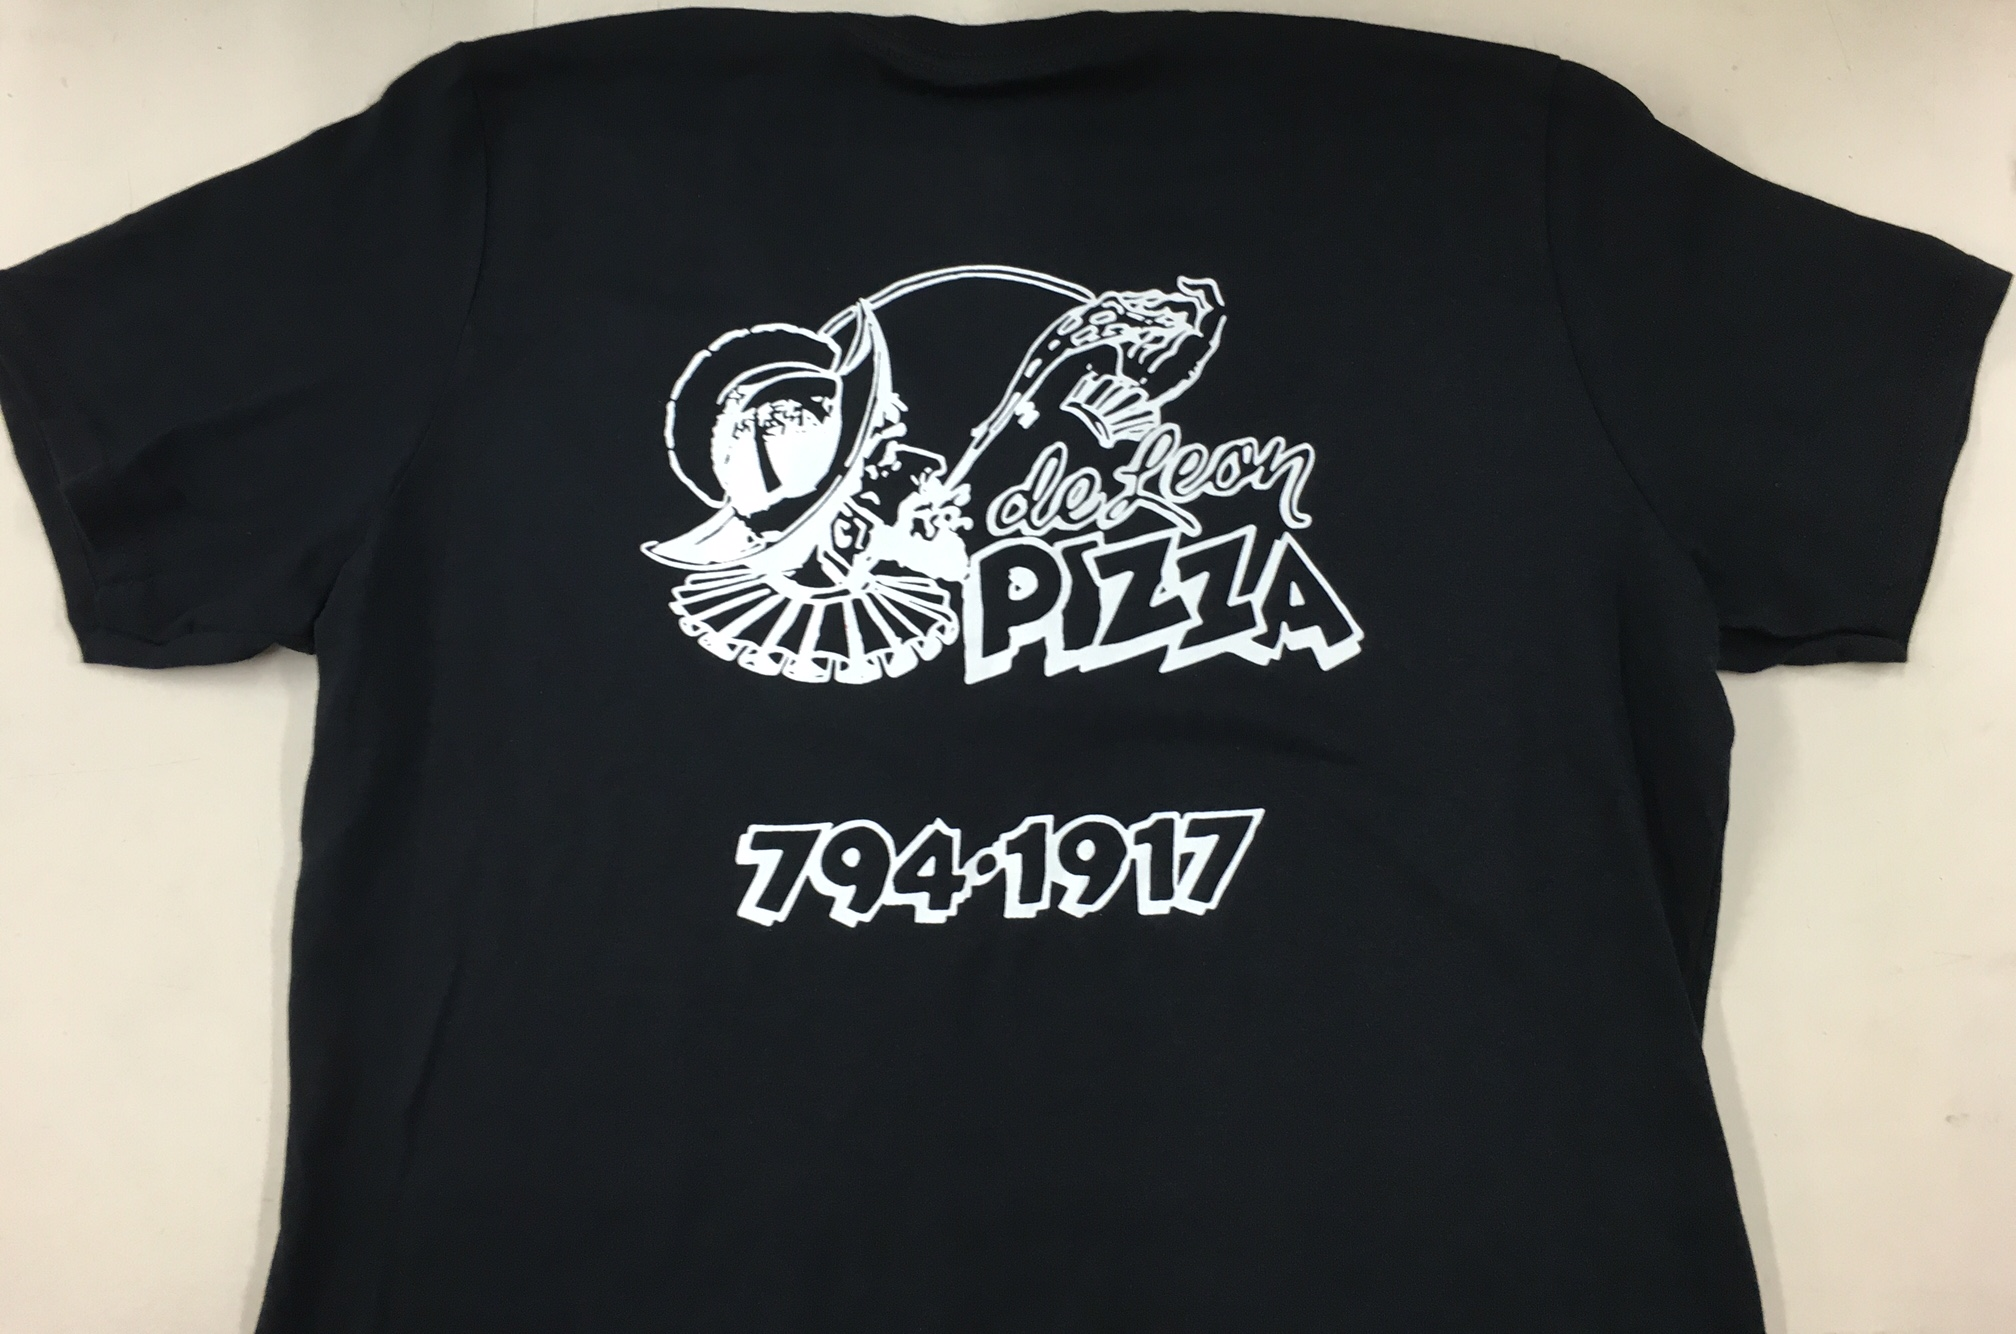 Ponce de Leon Pizza T-Shirt